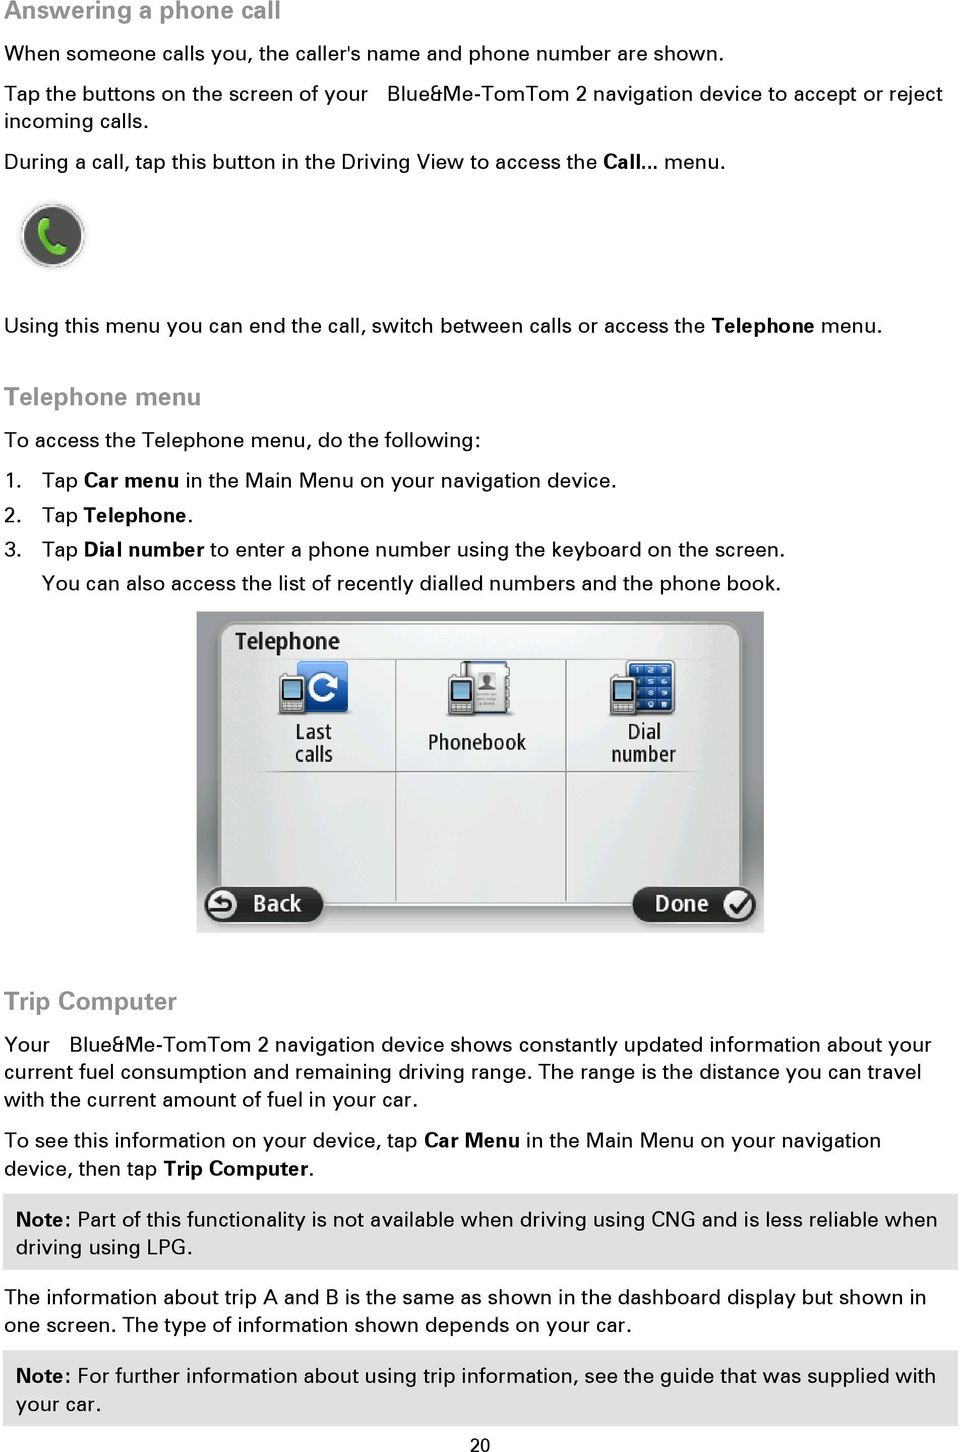 Blueme Tomtom 2 Live Reference Guide Pdf